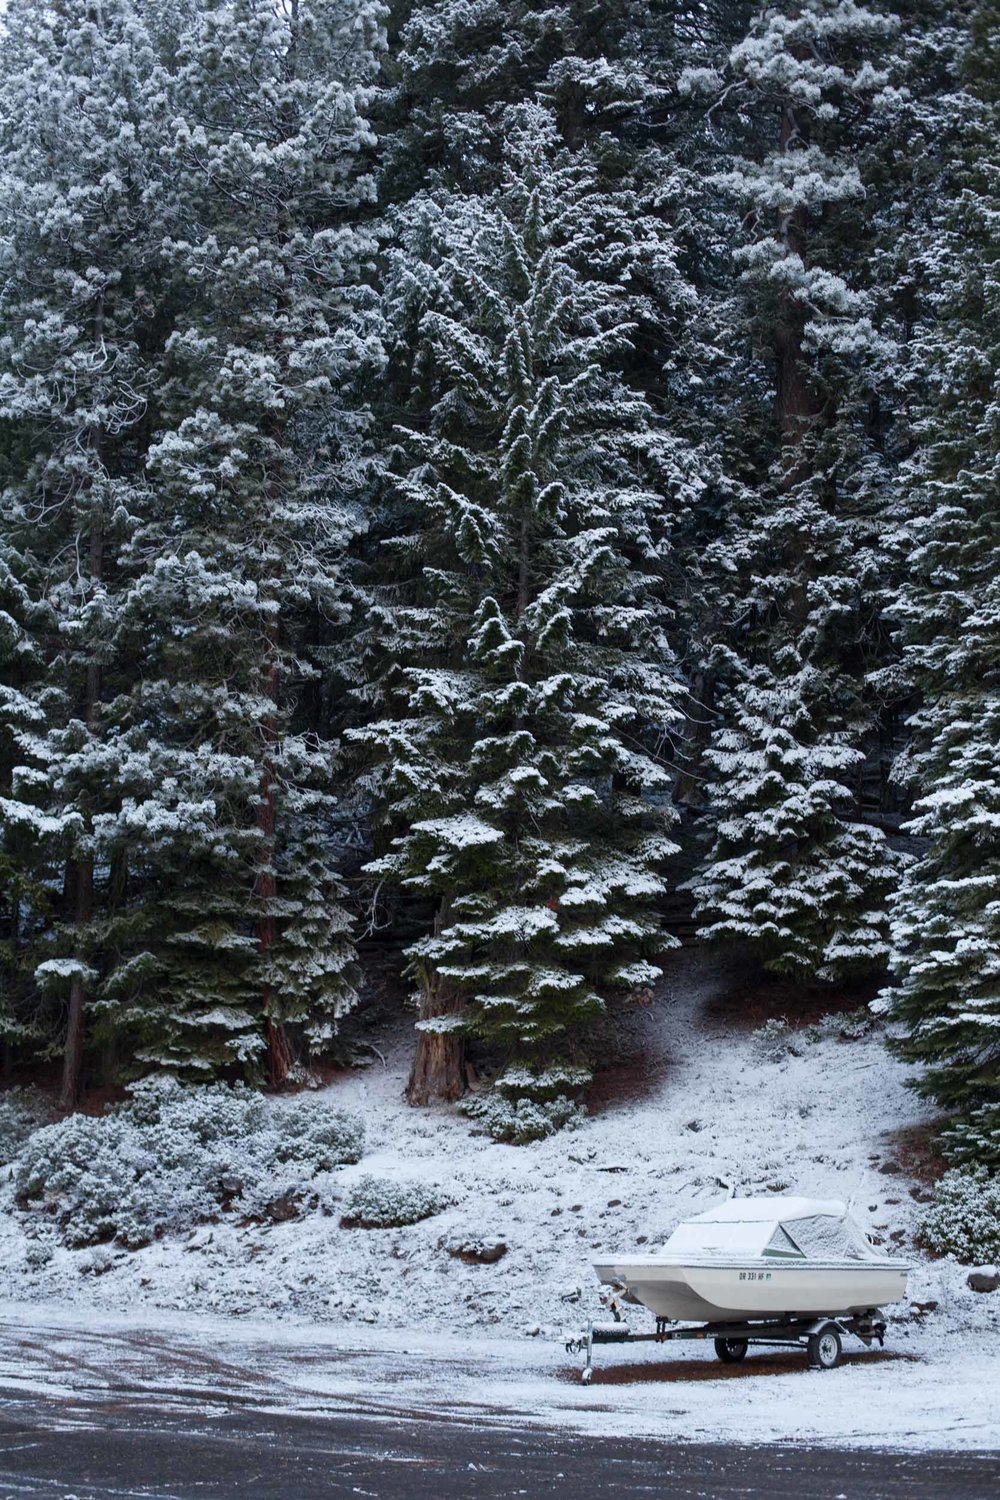 boat-snow-road-pinetrees-Oregon.jpg